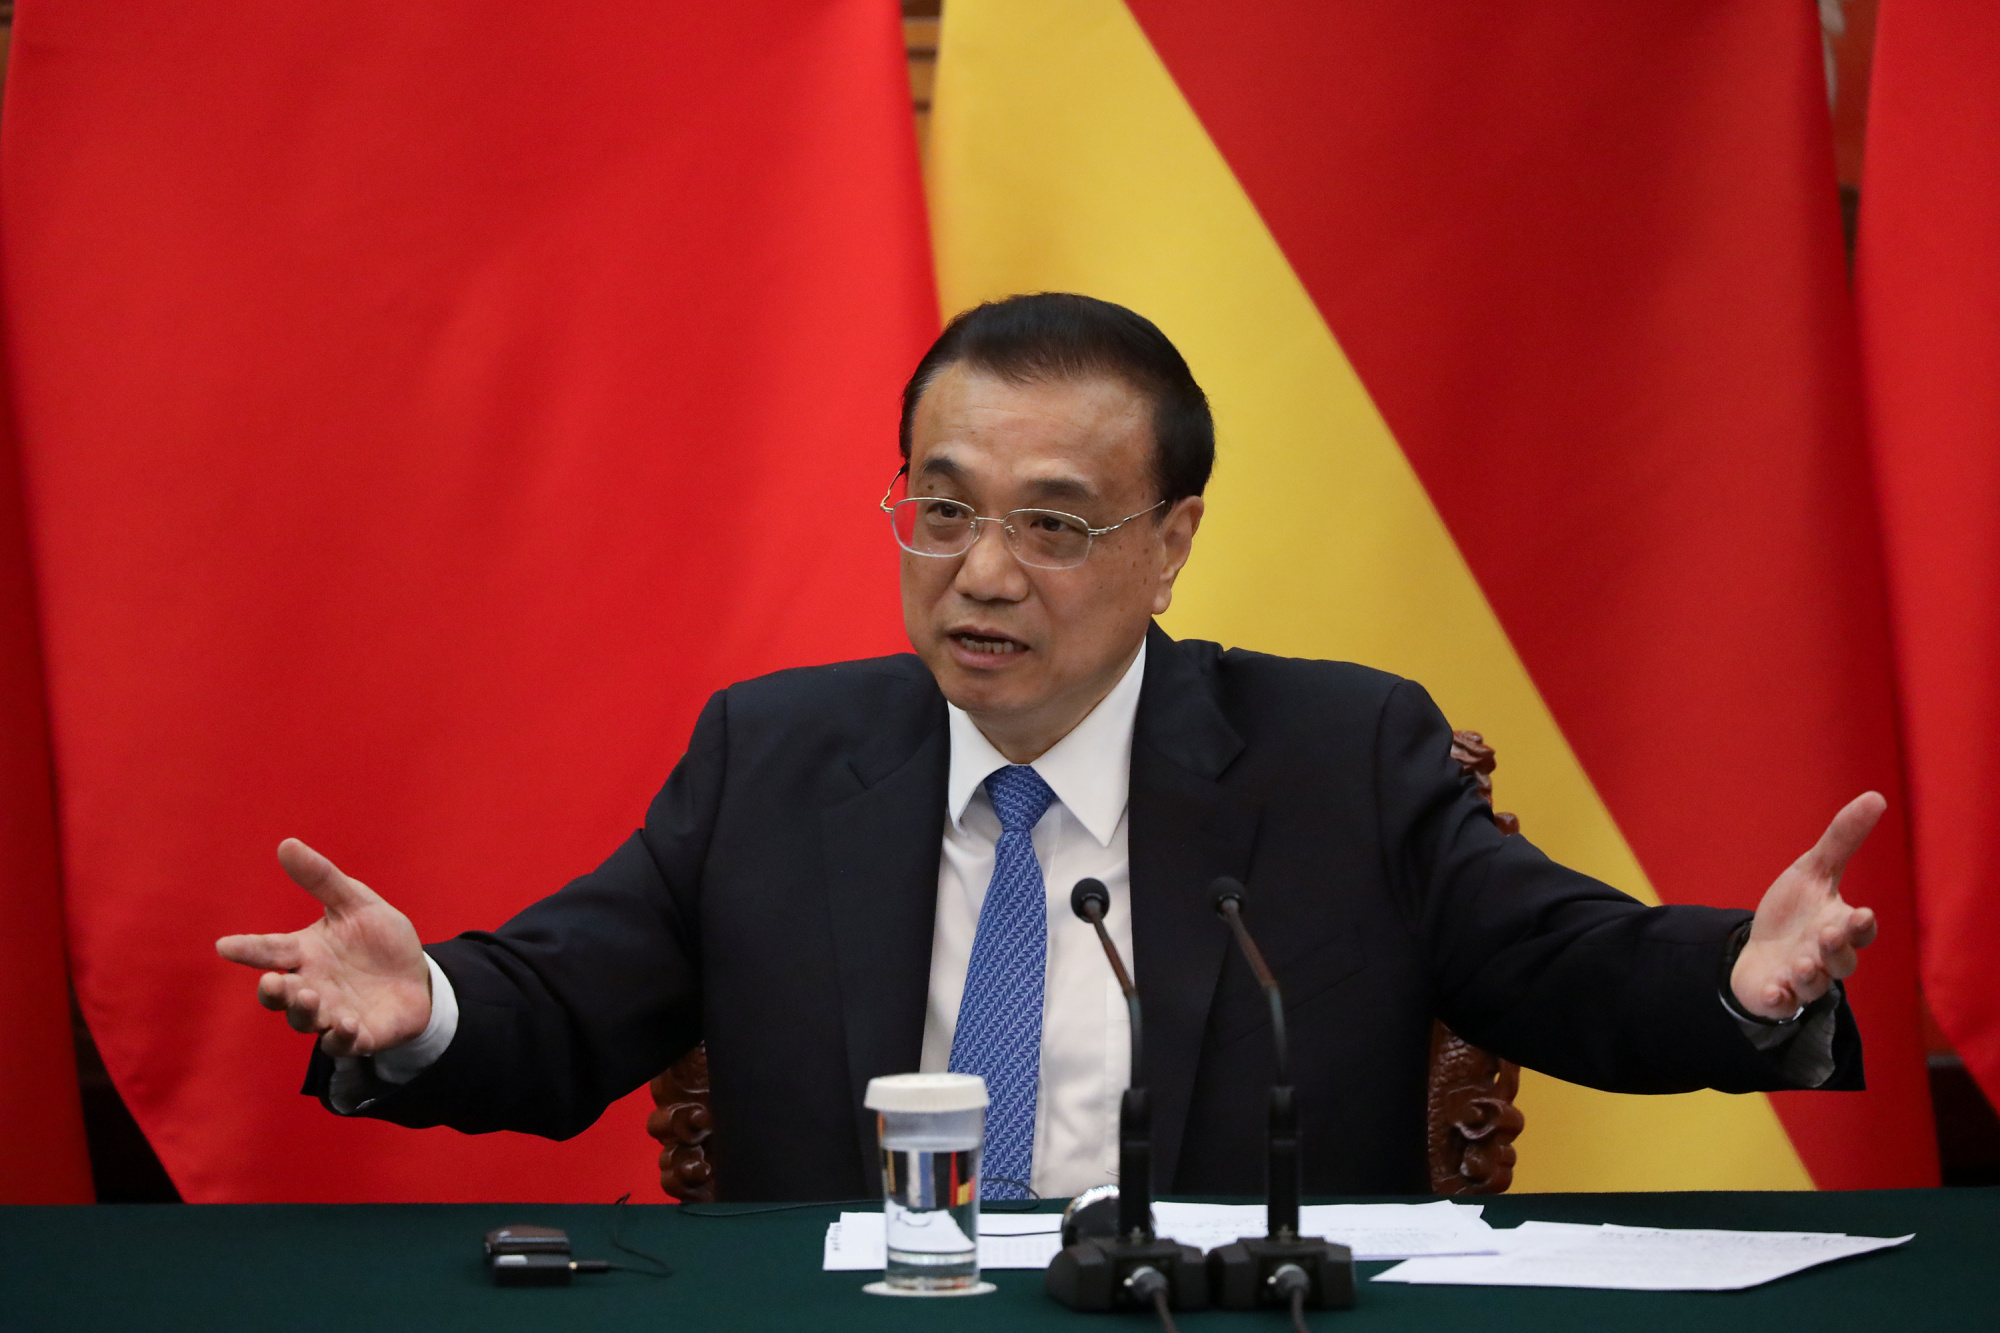 Chinese Premier Li Keqiang gives a speech during the news conference at the end of a meeting with German Chancellor Angela Merkel at the Great Hall of the People in Beijing on Friday. | REUTERS